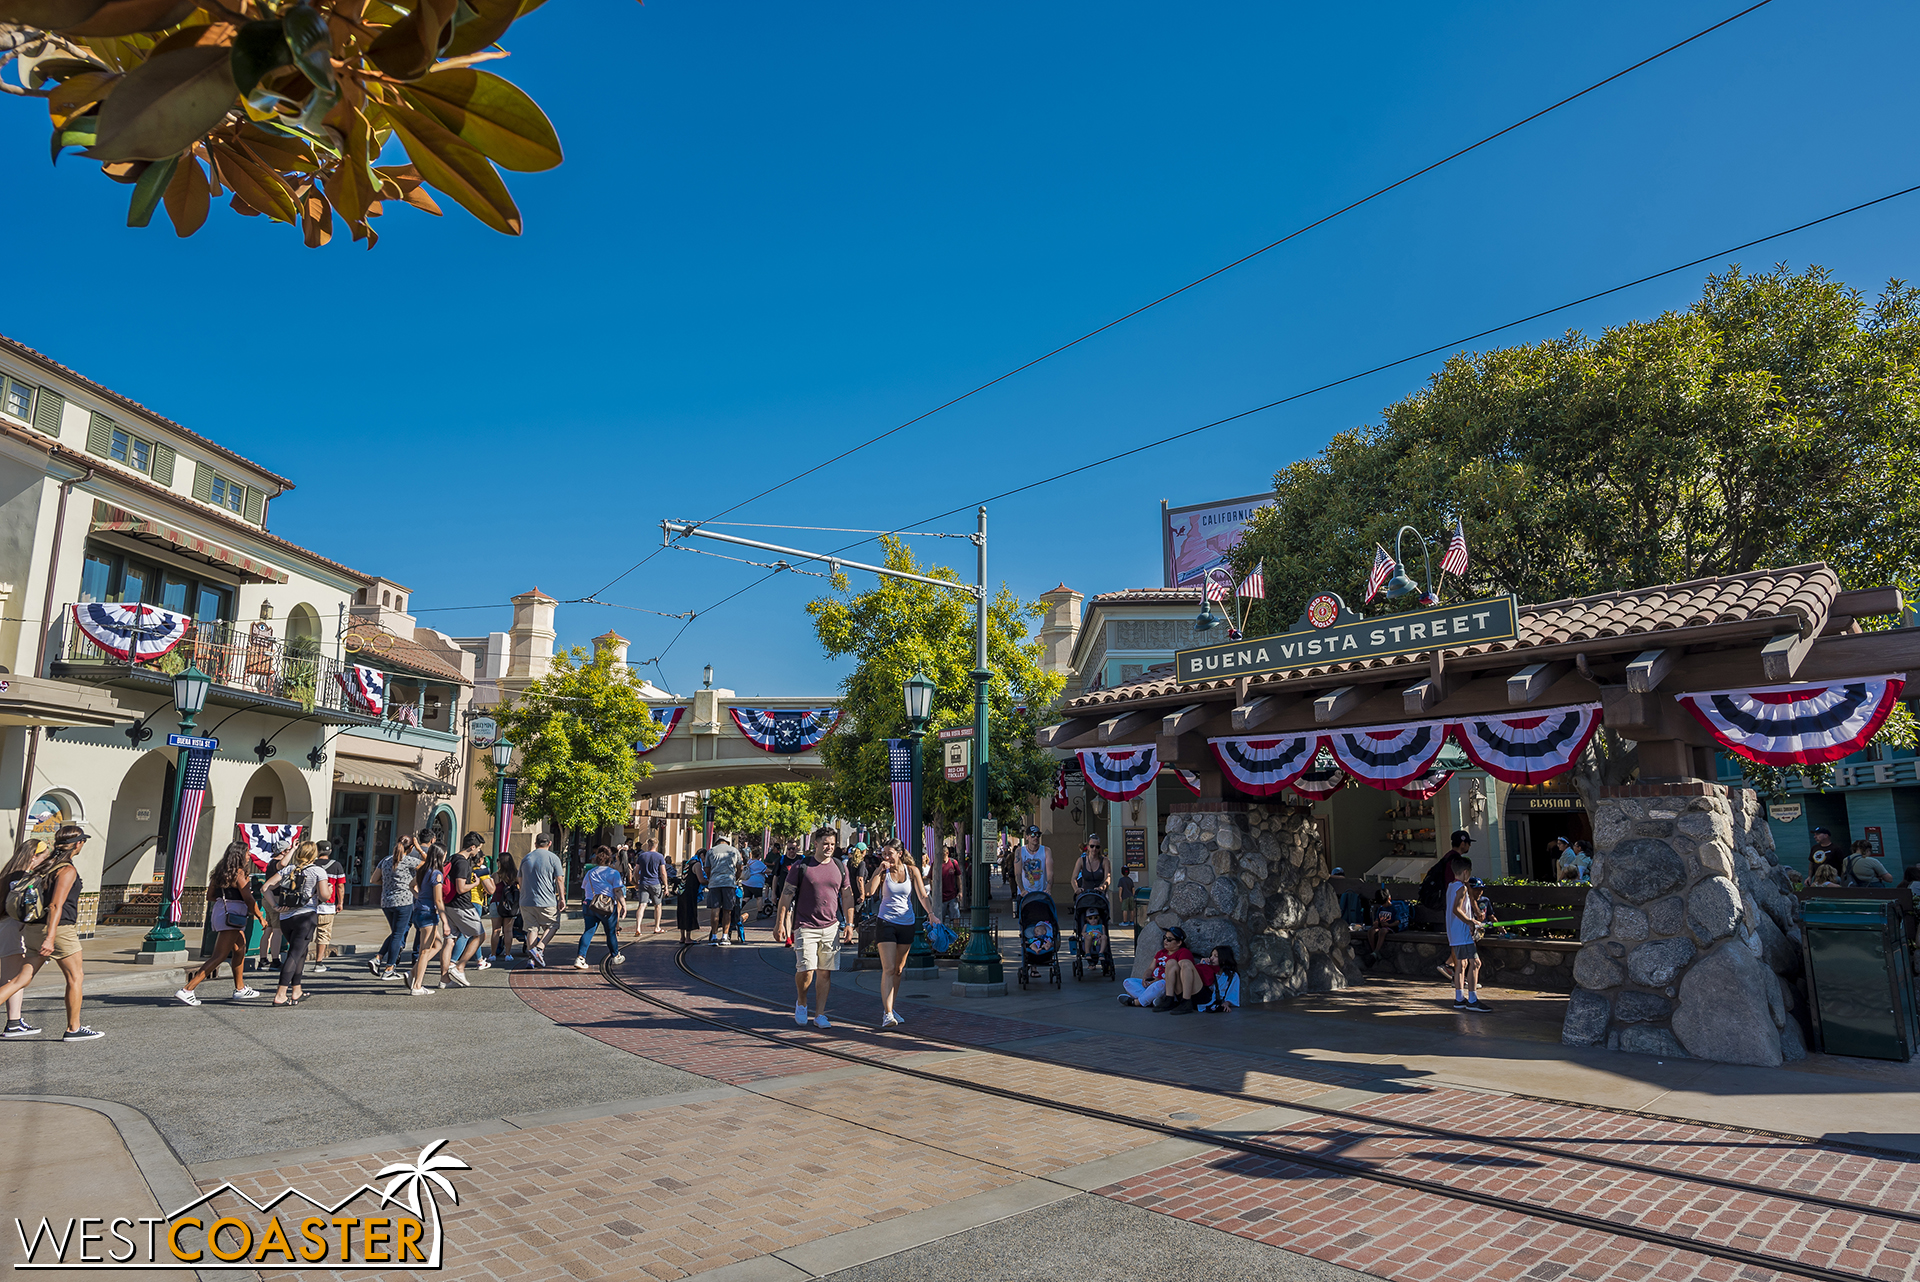 Just wanted to post some more and sunnier photos of Buena Vista Street in its All-American colors.  Also, the Red Car Trolley is currently closed for refurbishment.